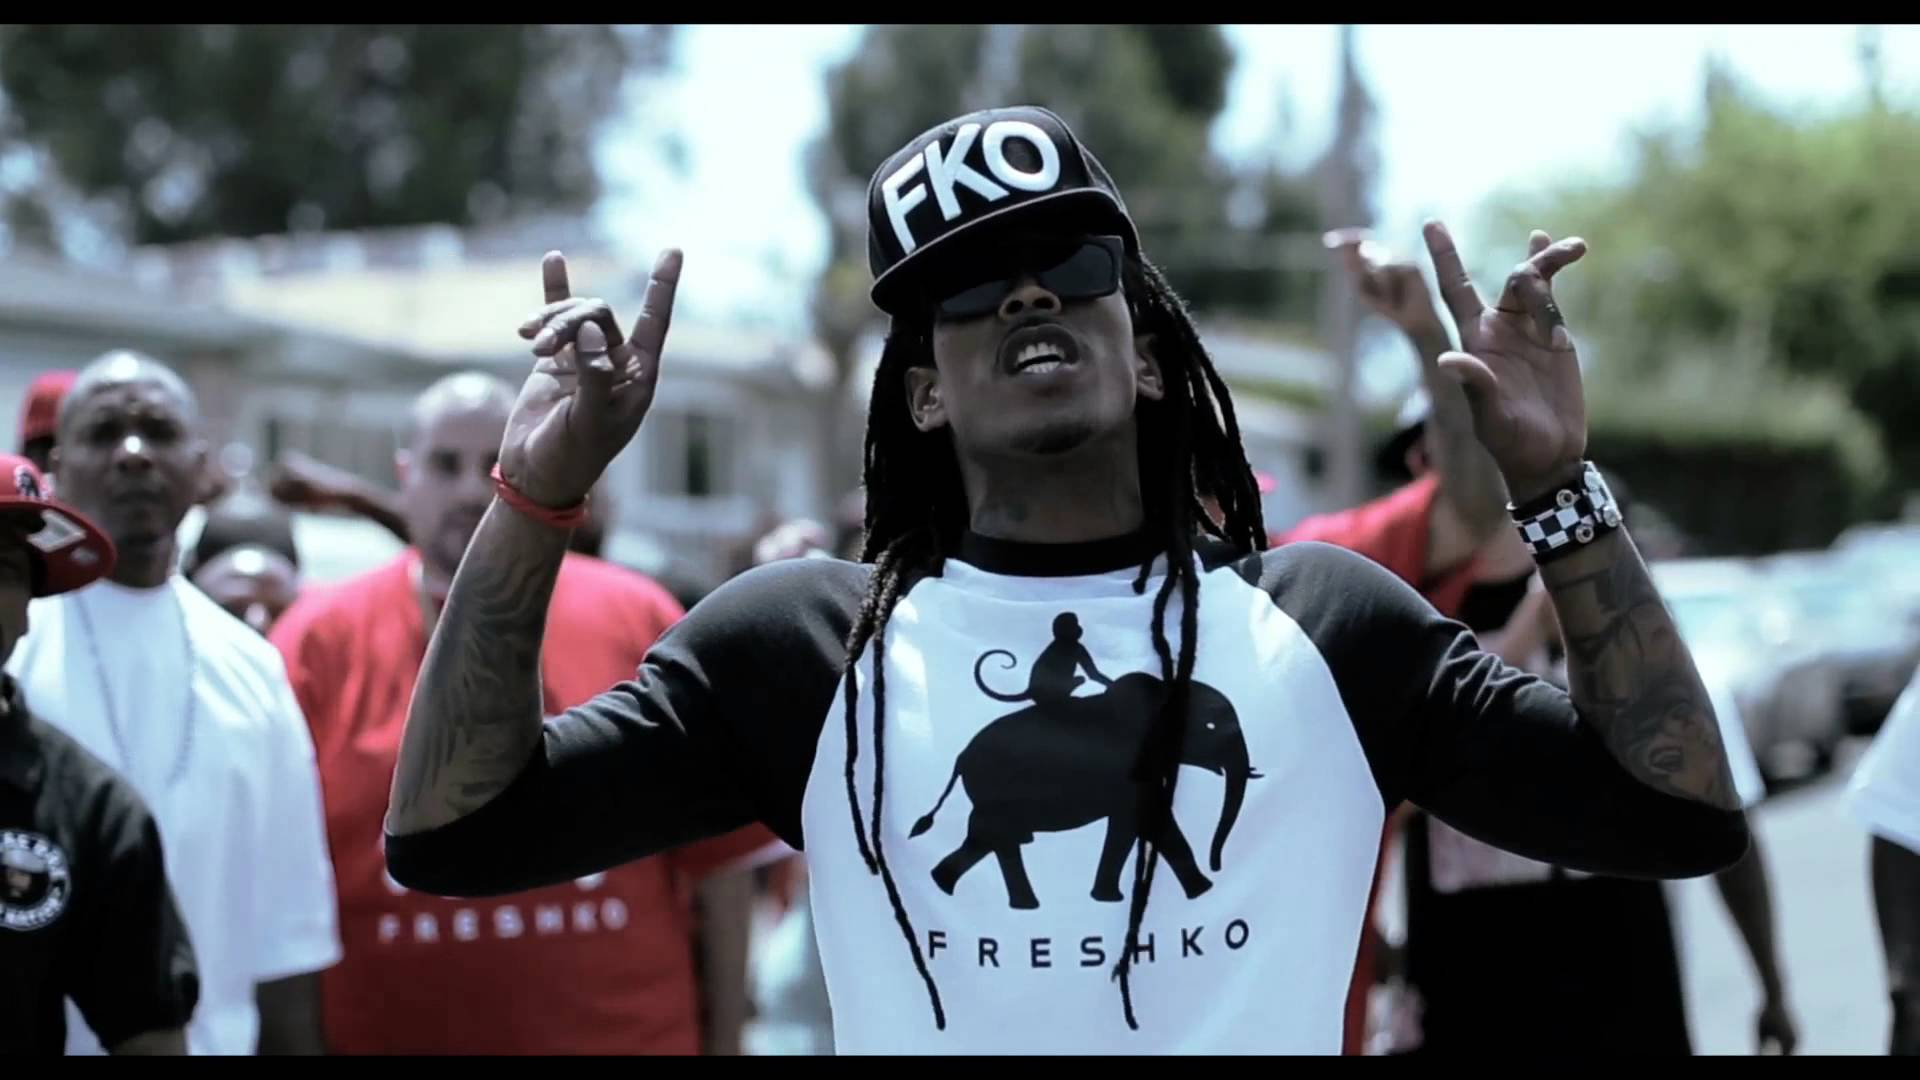 BERNER FT YOUNG THUG YG AND VITAL ALL IN THE DAY FLYHEIGHT 1920x1080